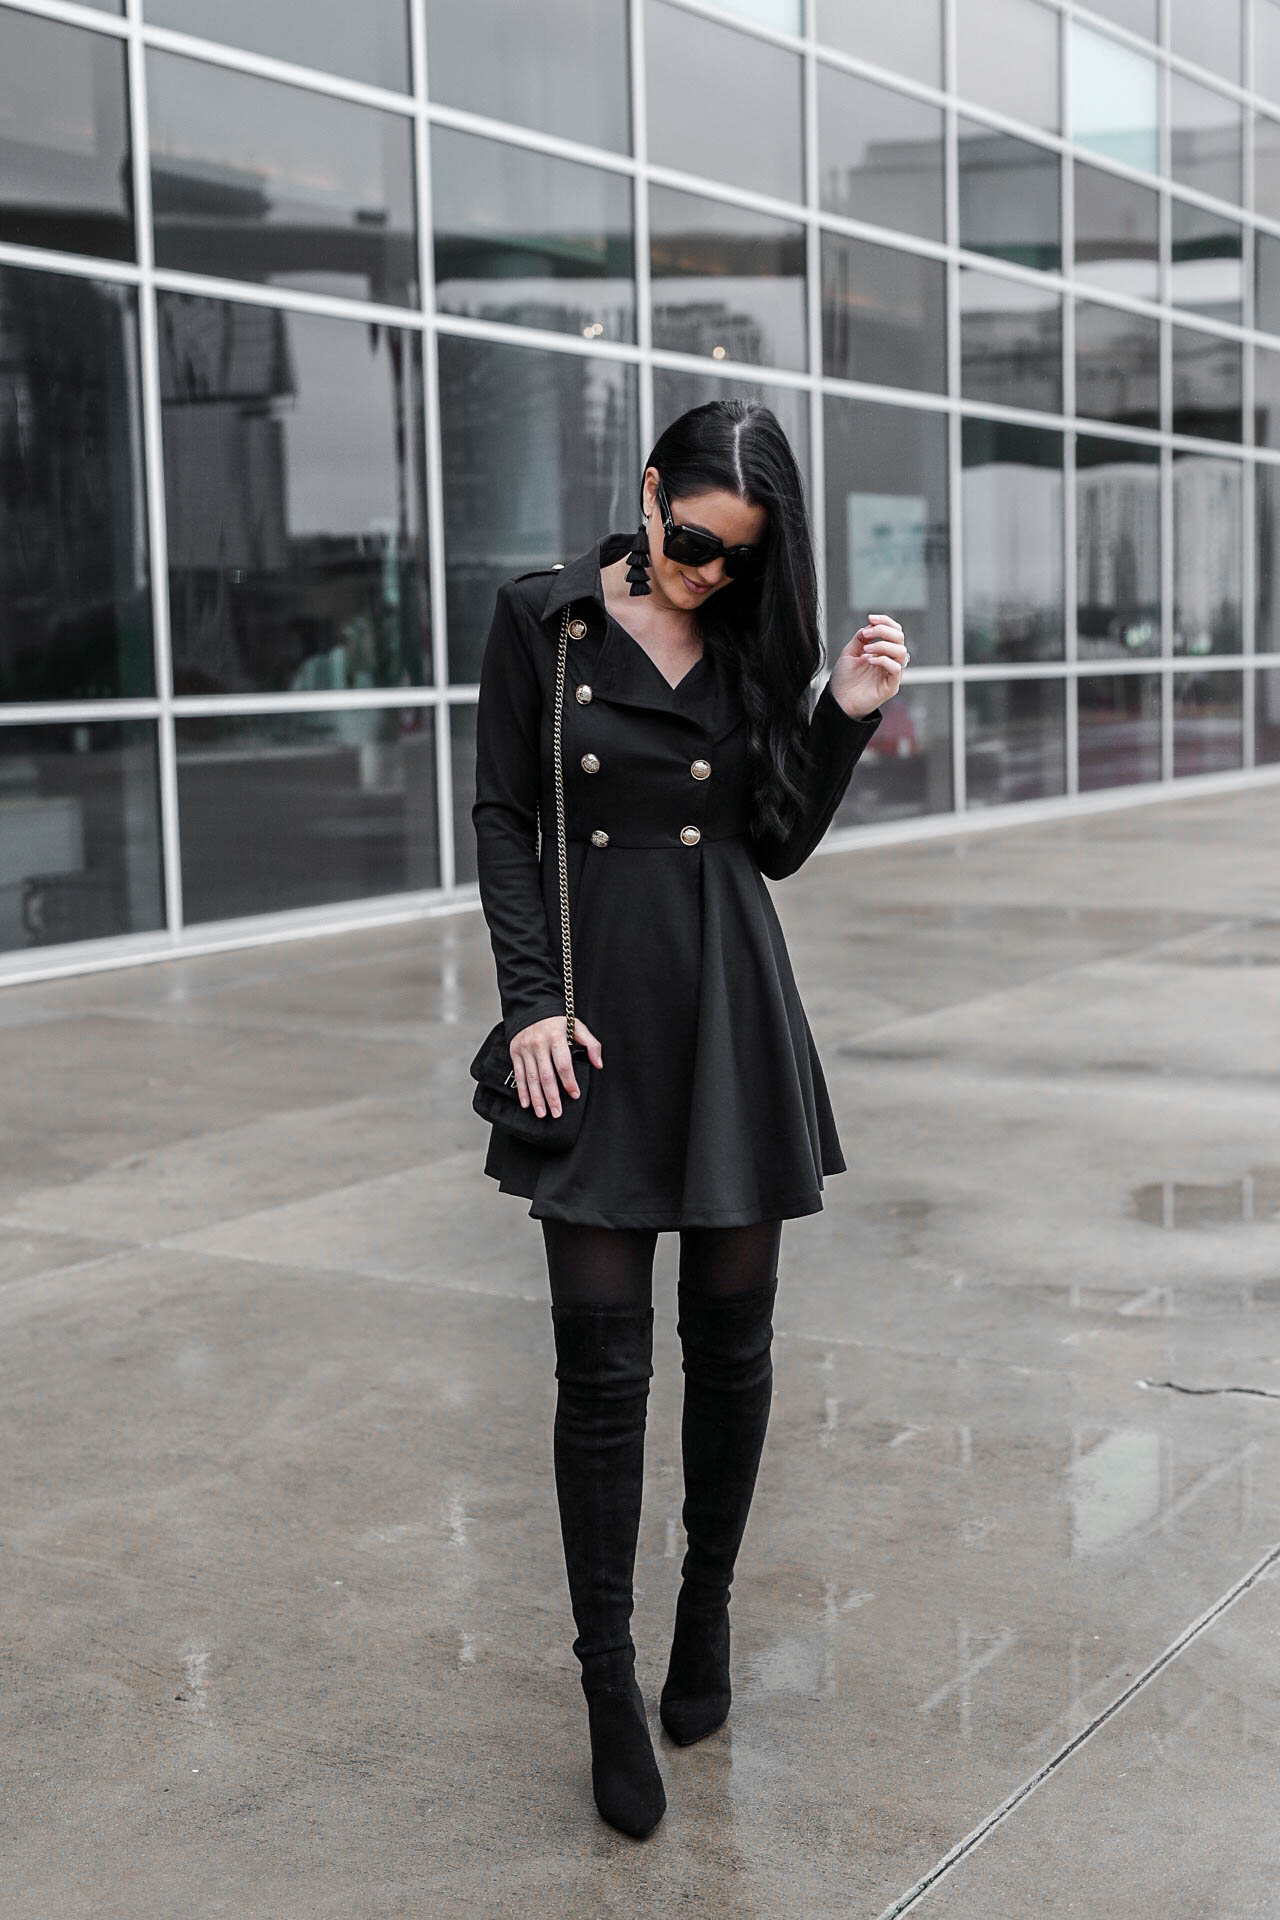 Tips on How to Wear a Black Trench Coat as a Dress | trench coat outfits | trench coats for women | how to style a trench coat | dresses for winter | winter fashion tips | winter style ideas || Dressed to Kill #trenchcoat #winterdresses #winterfashion - How to Wear a Trench Coat Dress by popular Austin fashion blogger Dressed to Kill